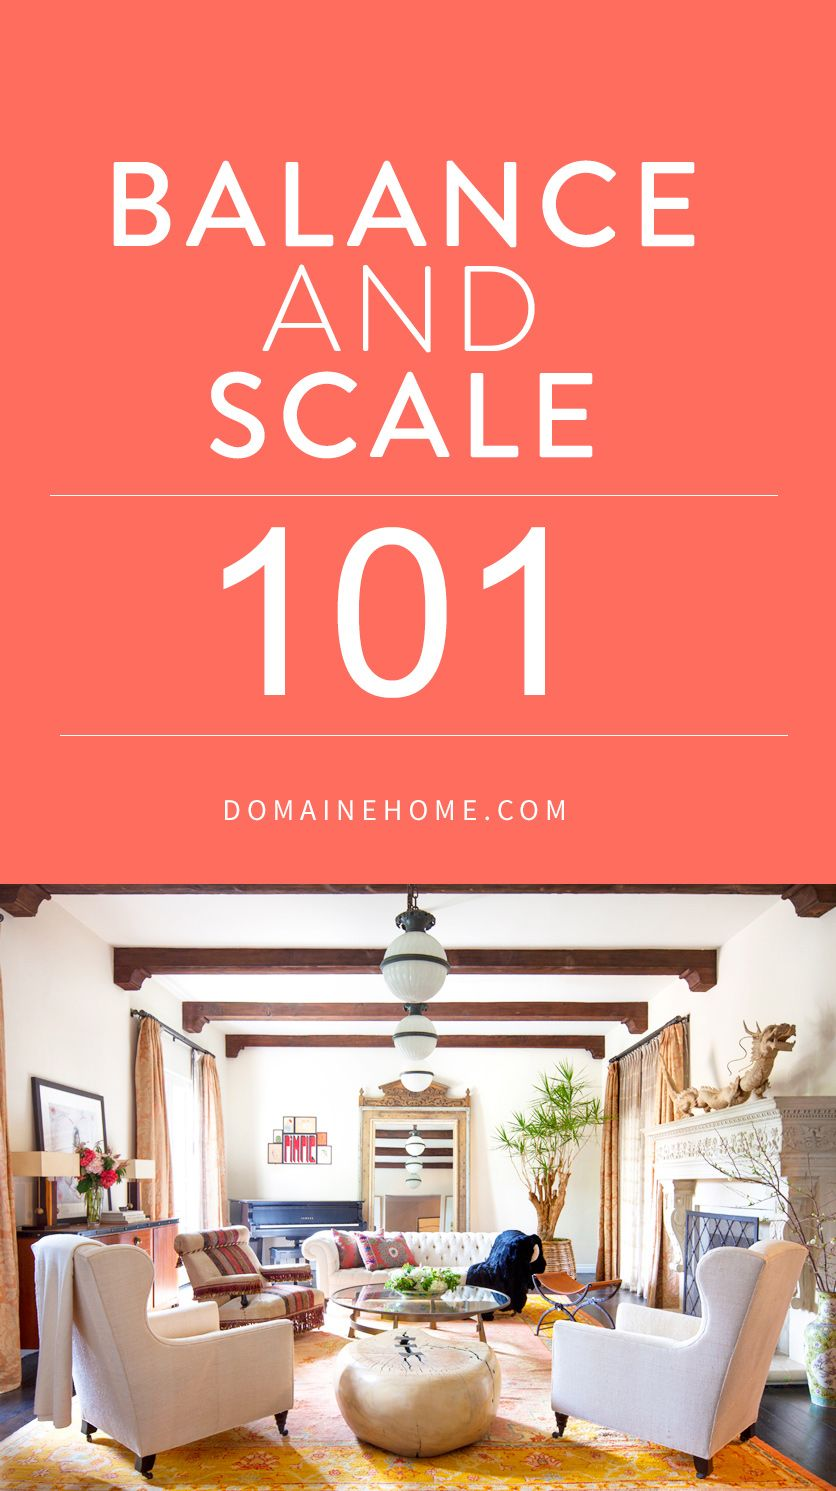 Balance And Scale How To Master 2 Of Design S Fundamentals Scale Interiors And Decorating